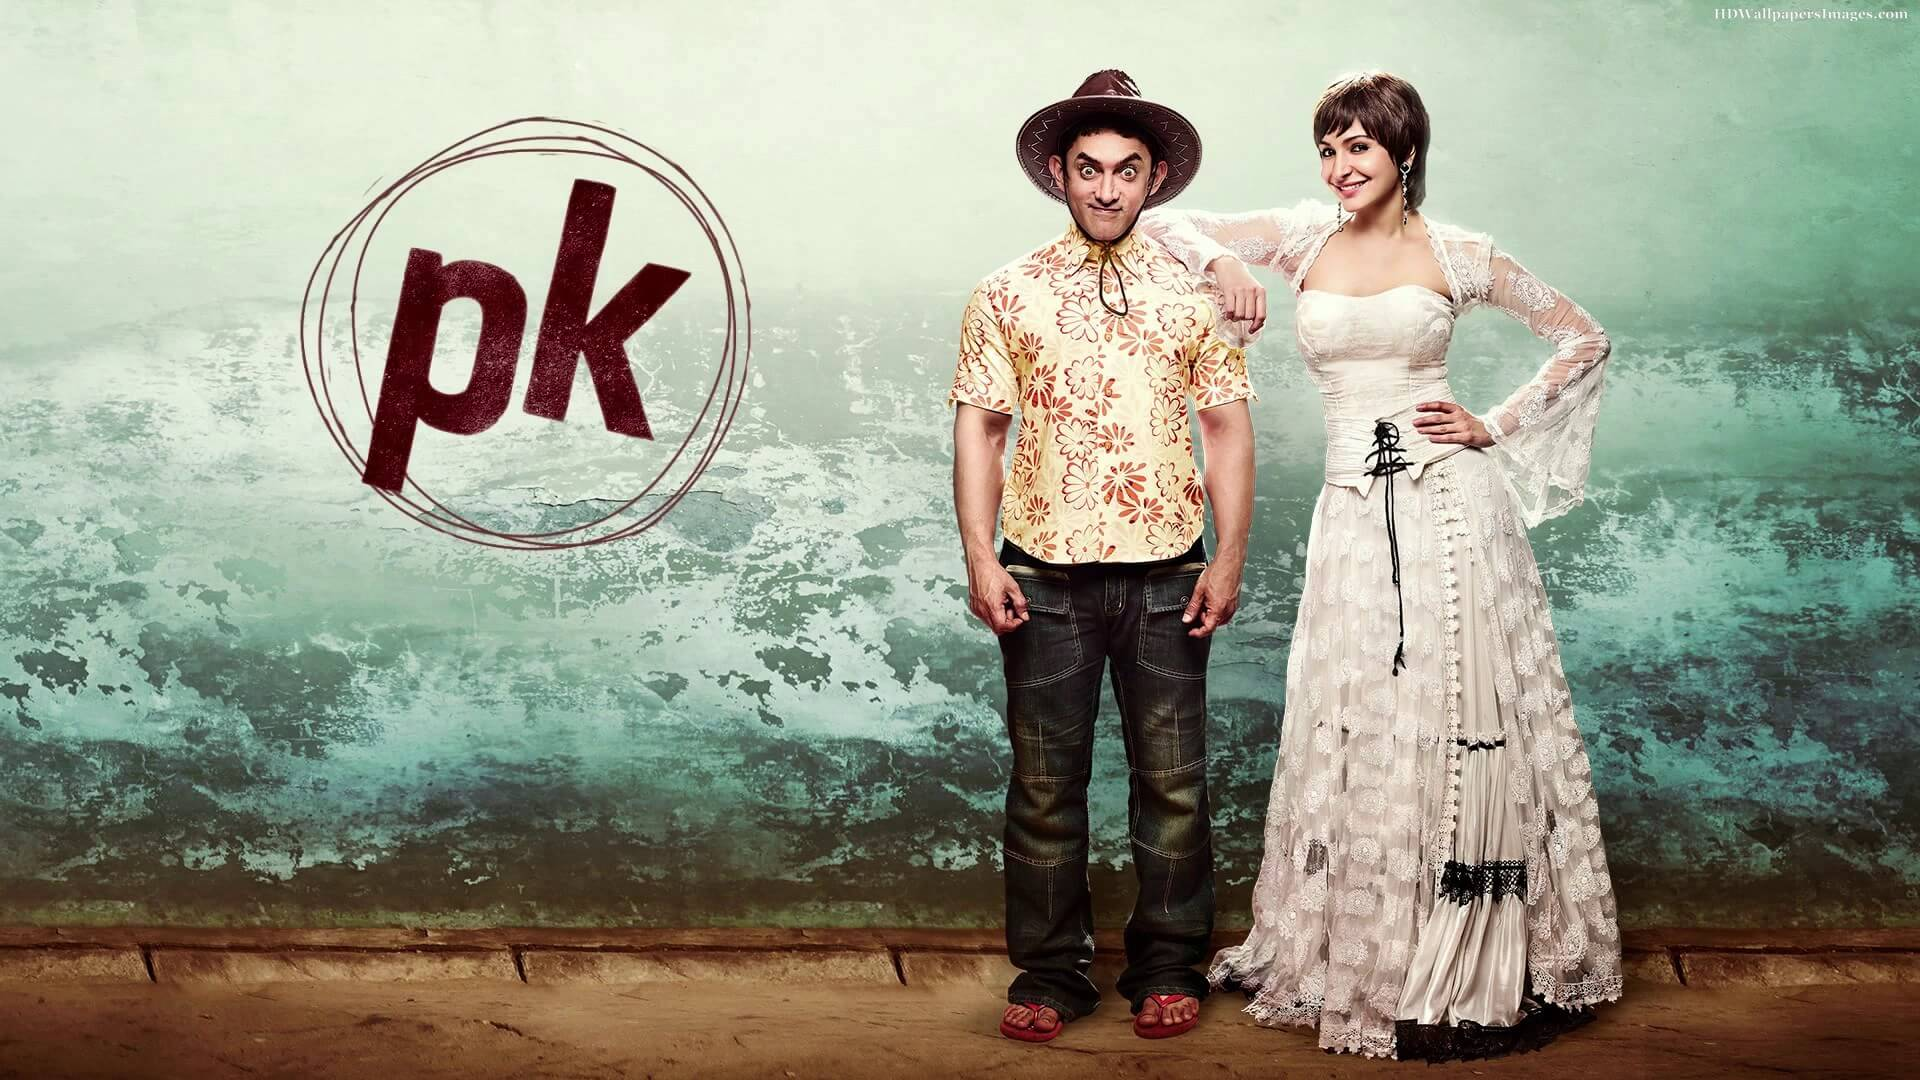 PK-Movie-Aamir-Khan-and-Anushka-Sharma-New-Poster-Images